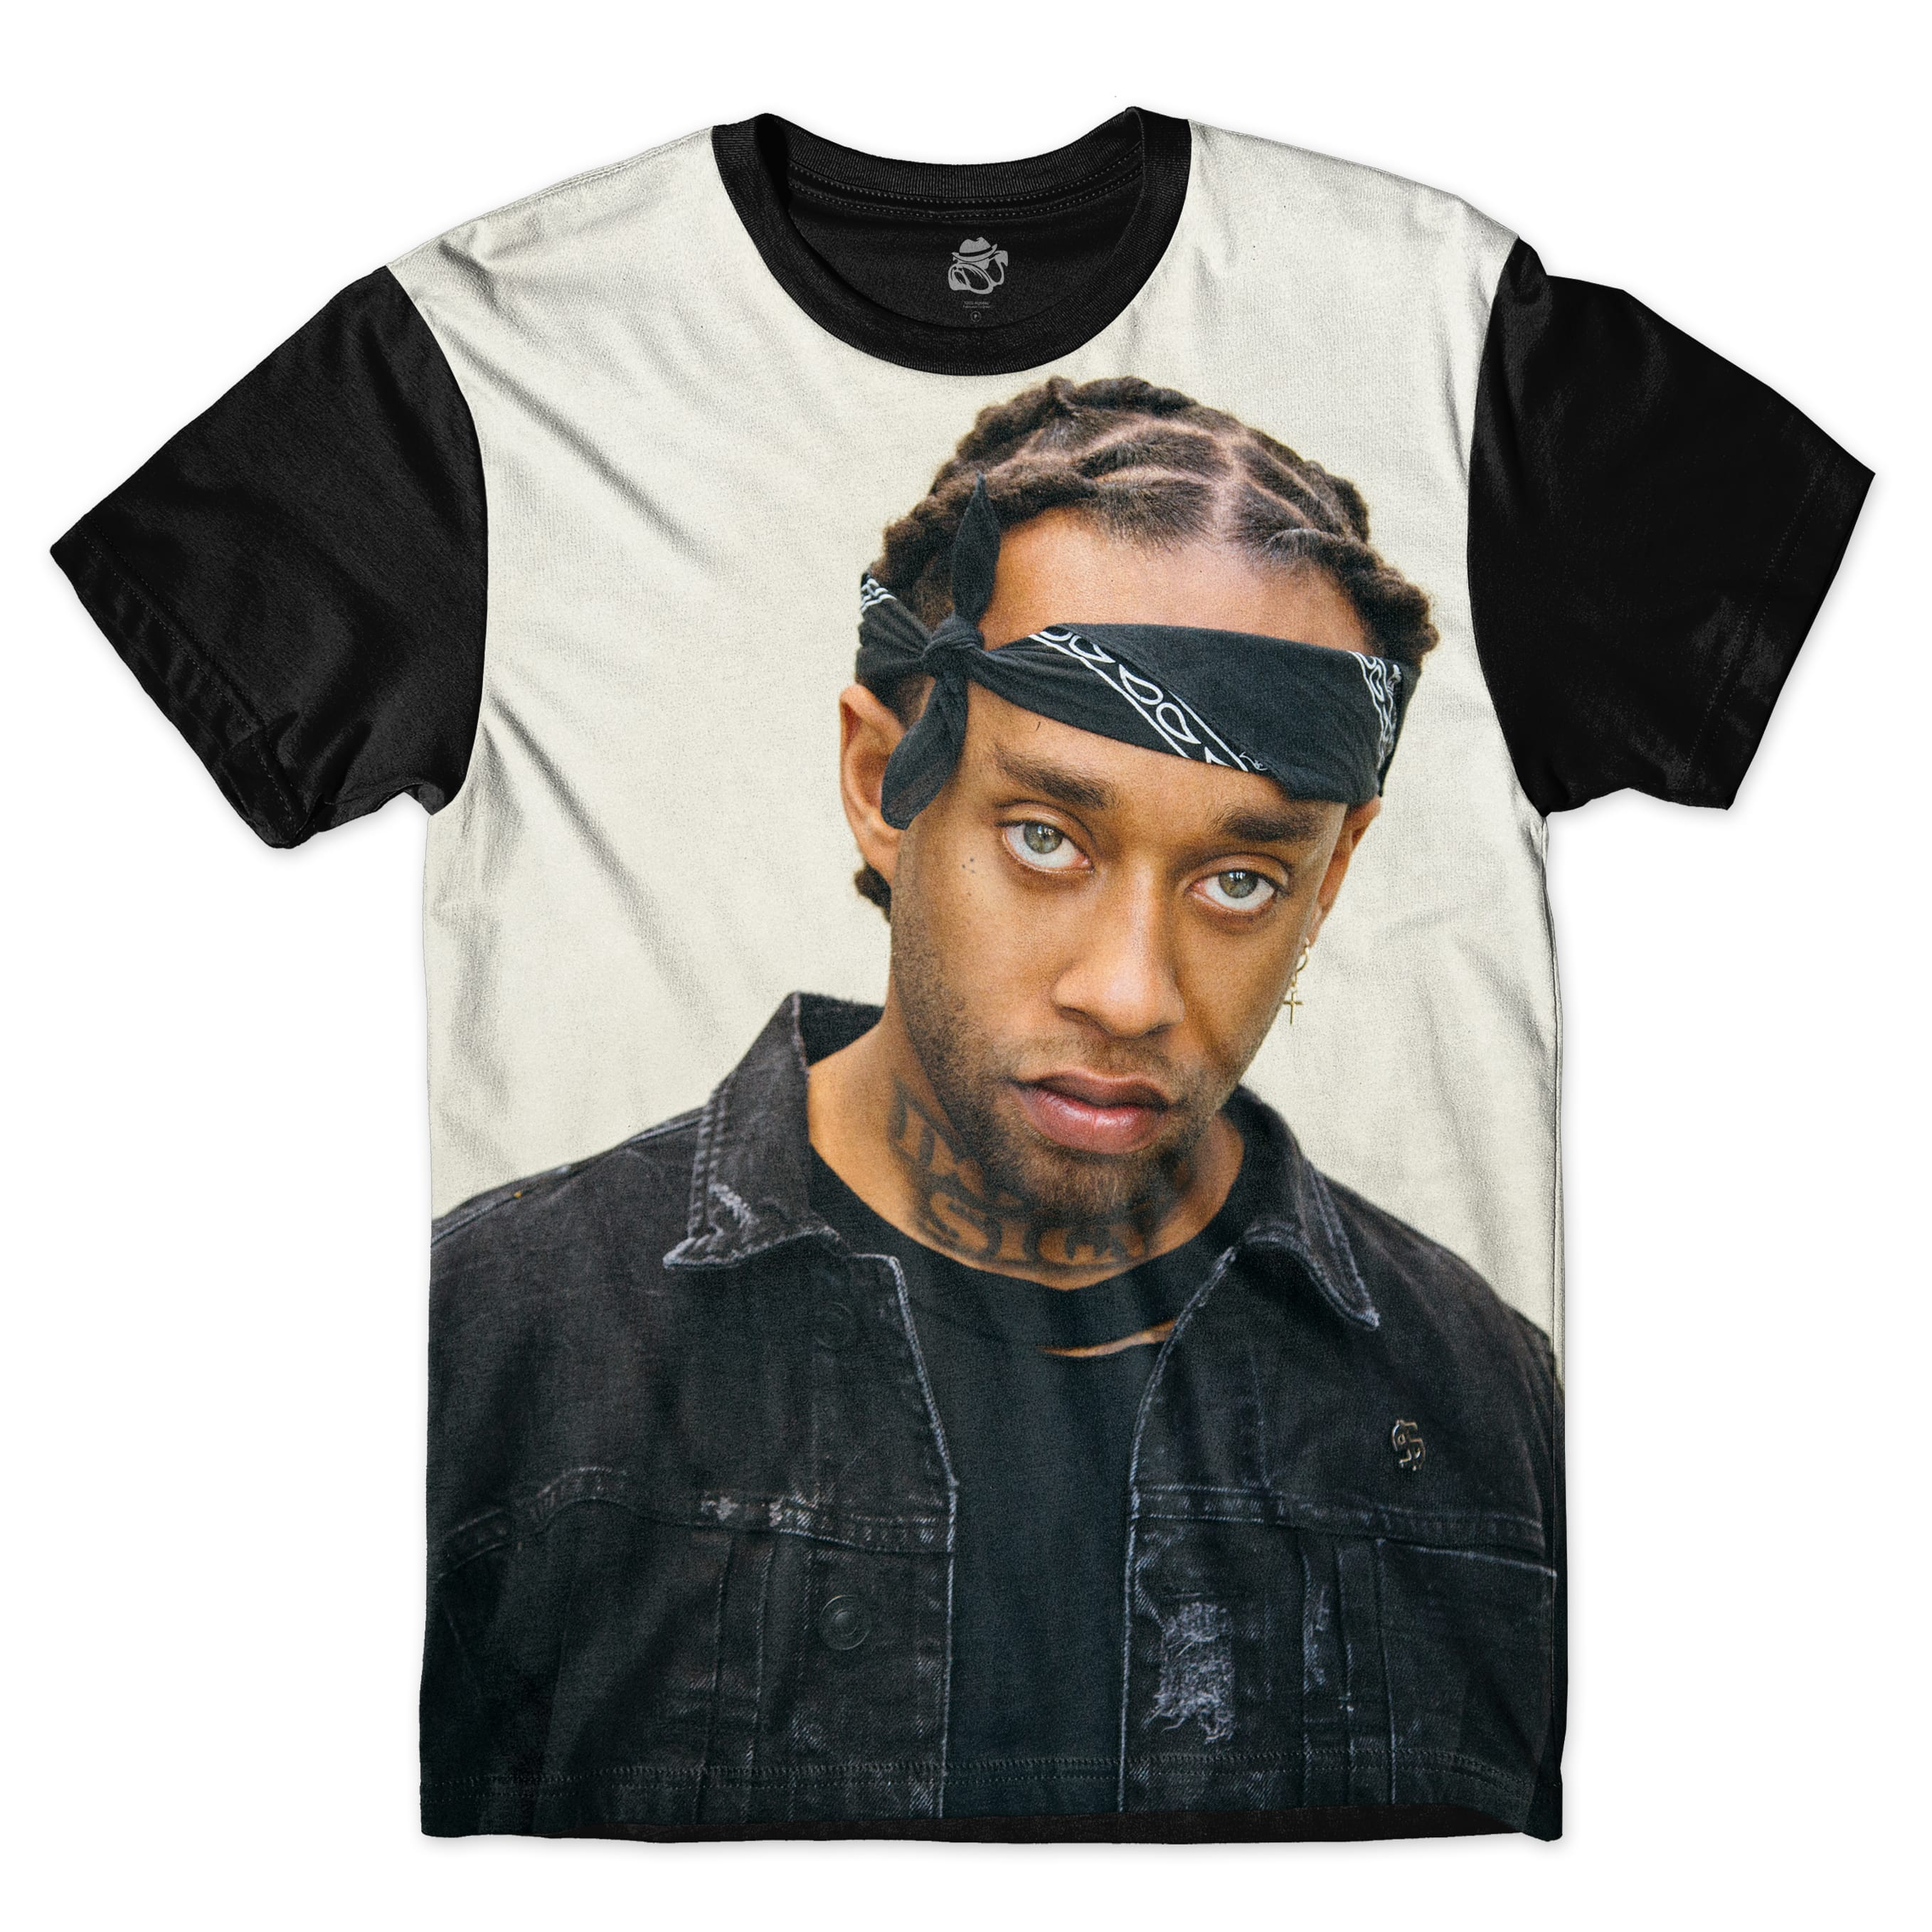 Camiseta BSC Rappers Ty Dolla Sign Full Print Cinza / Preto